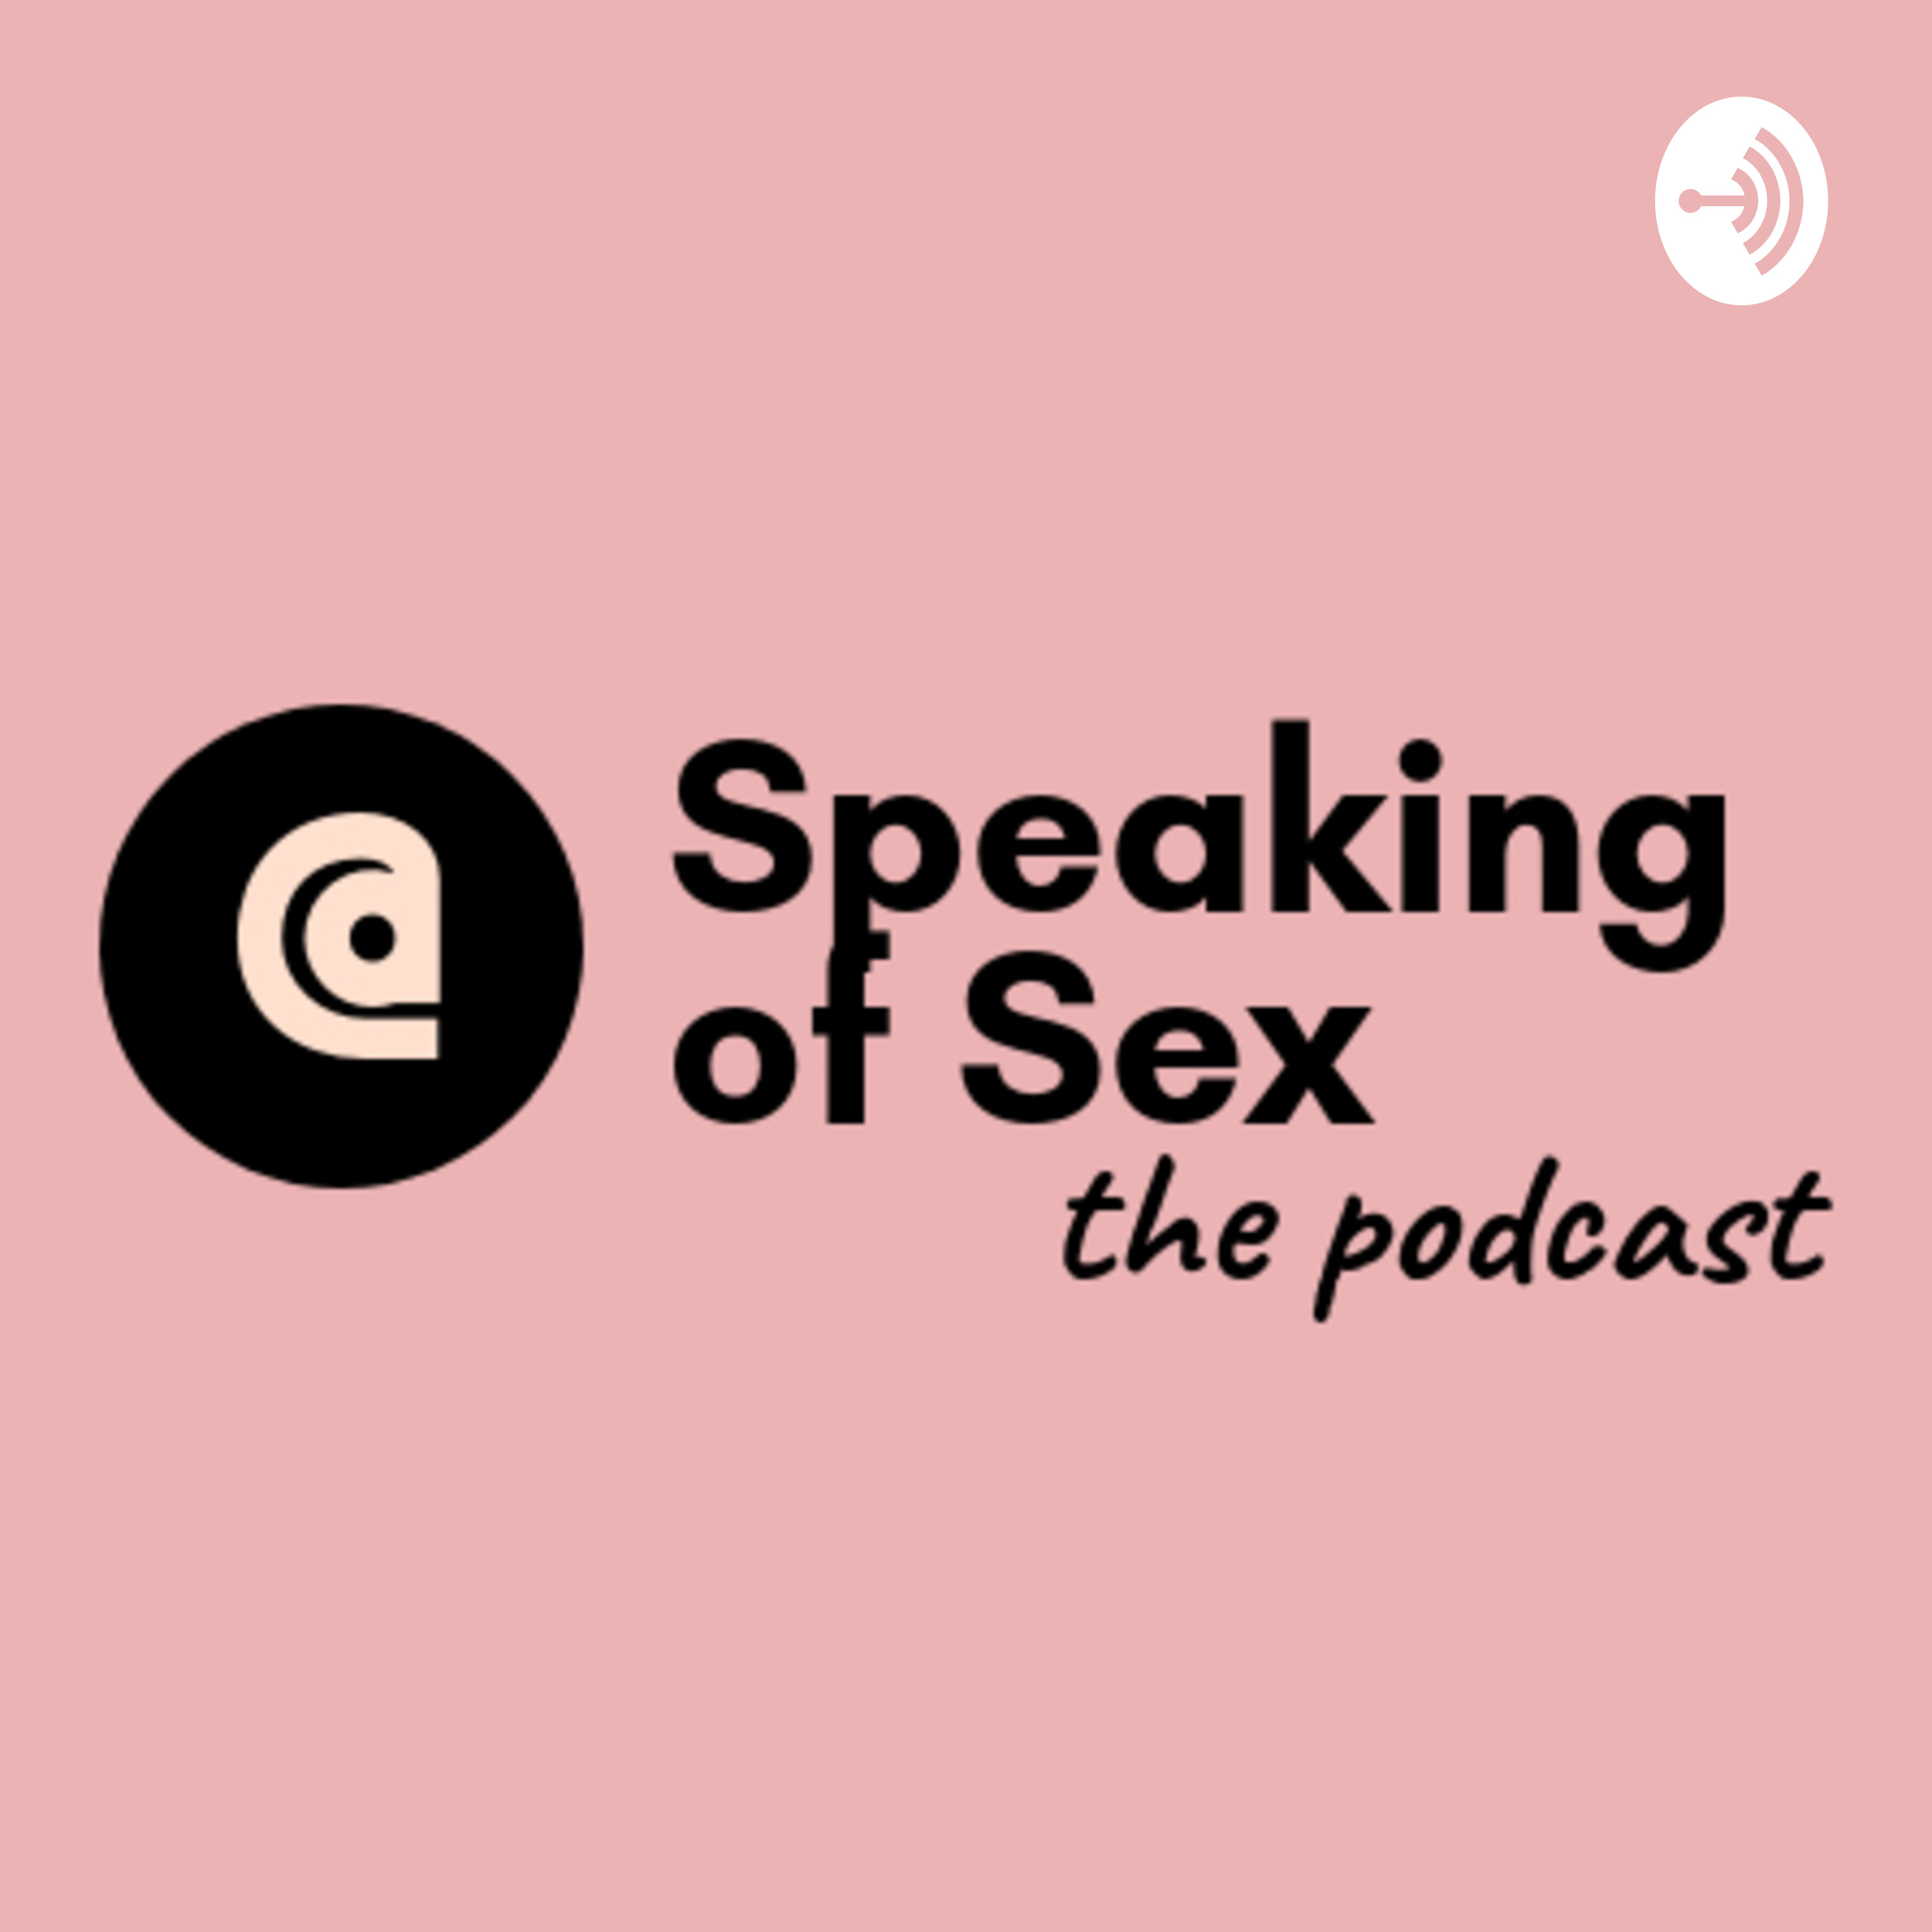 What is Speaking of Sex?